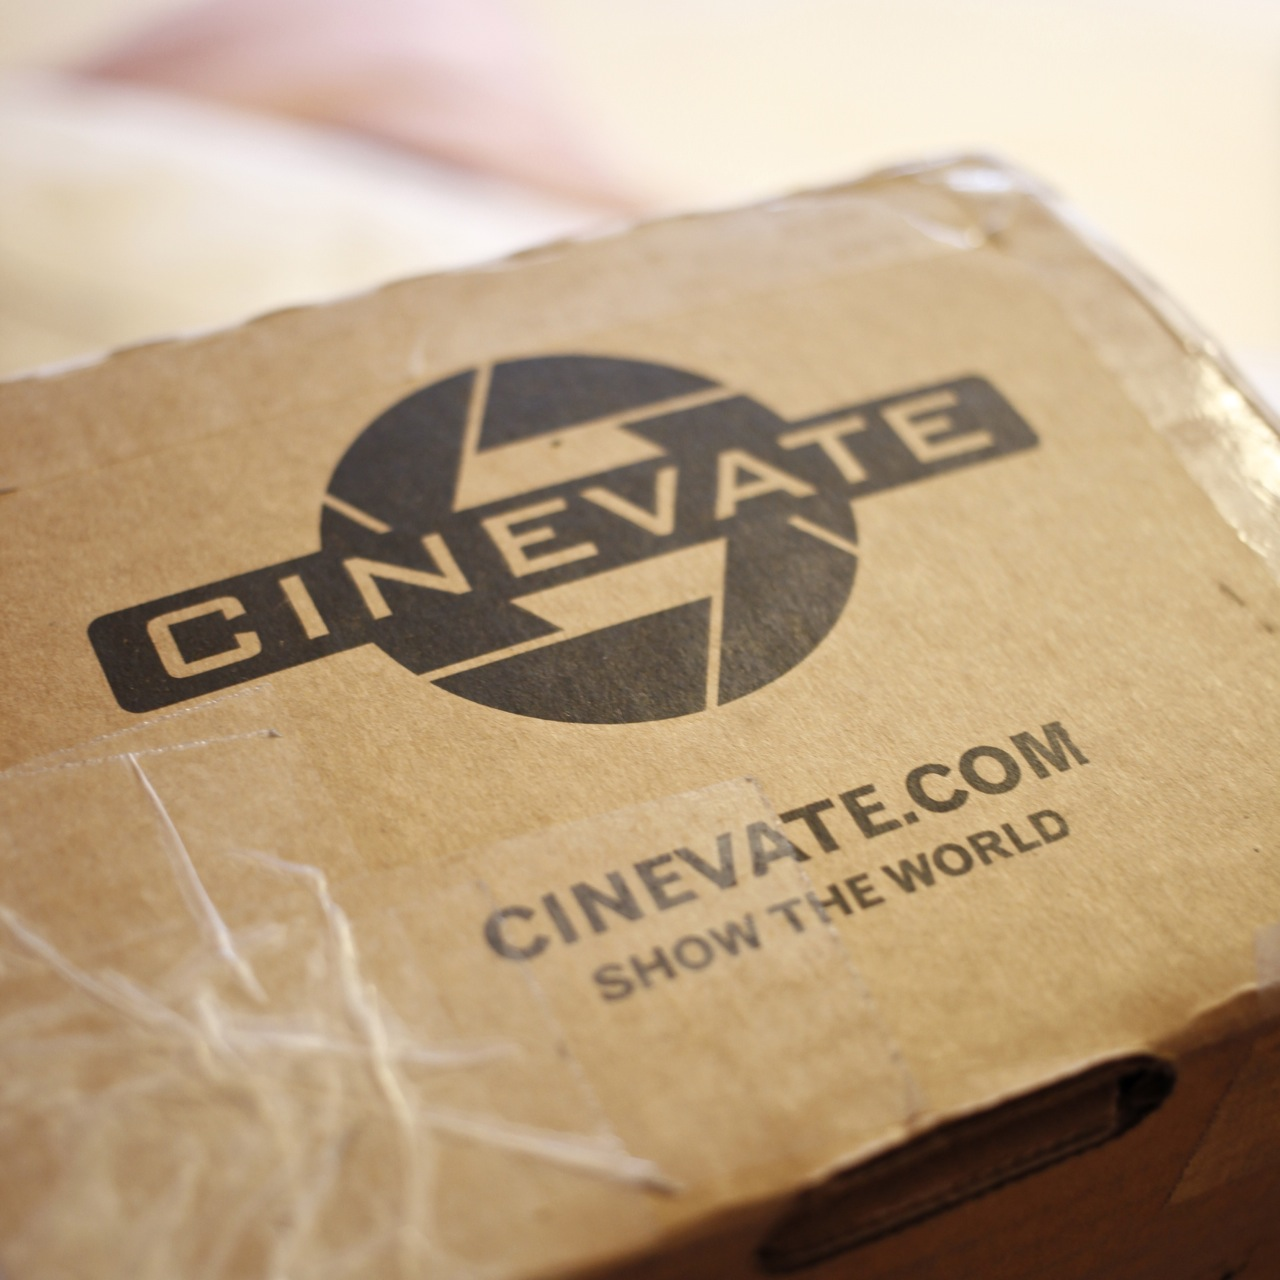 Carton Cinevate